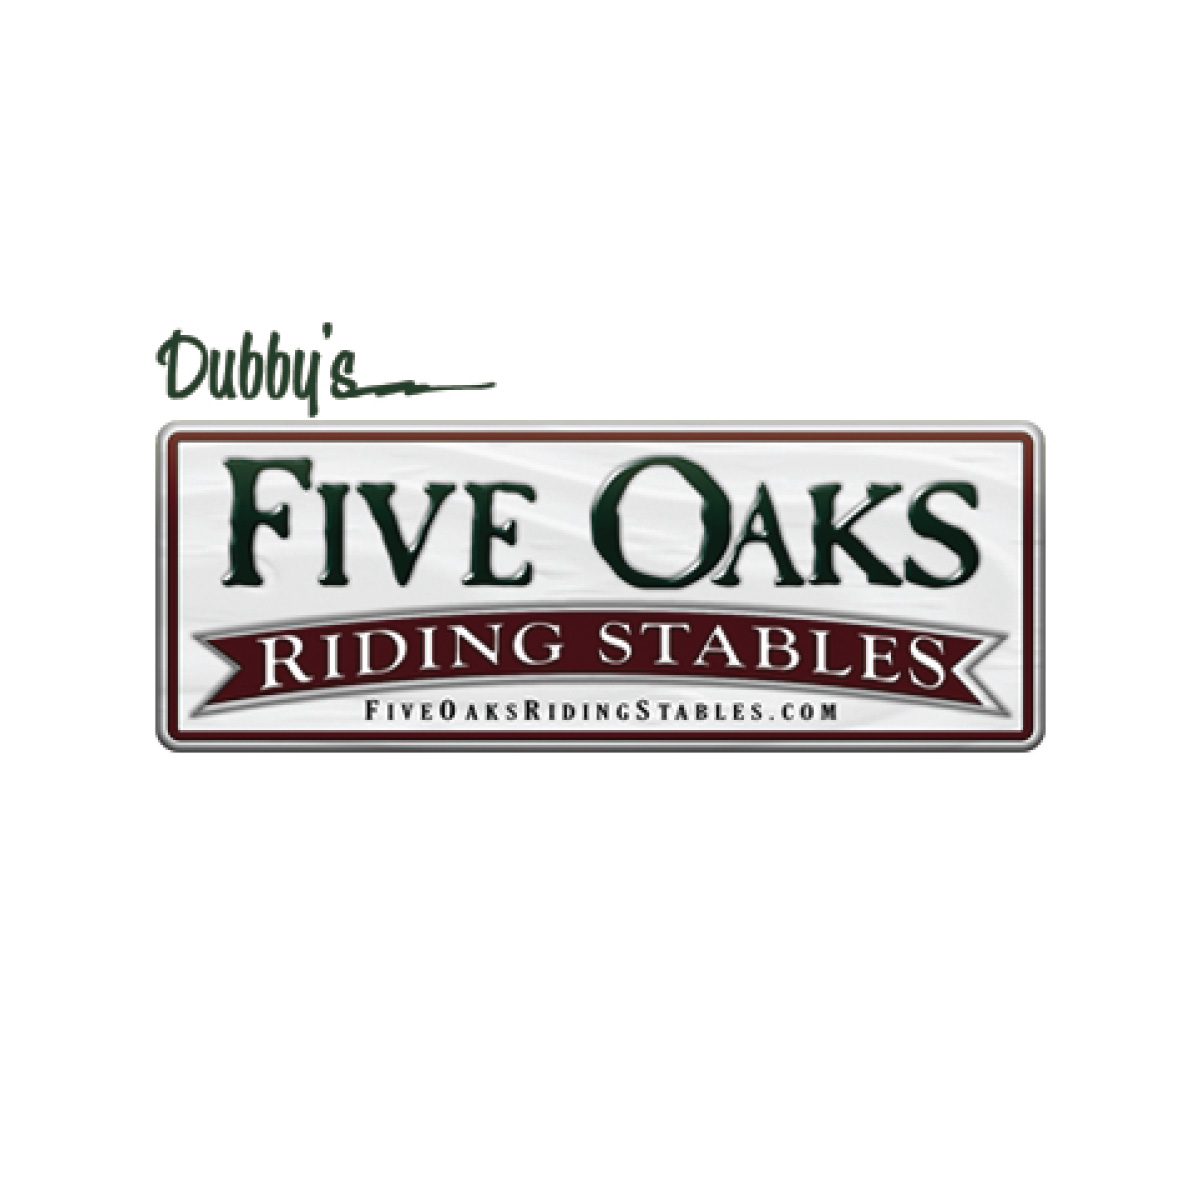 Five Oaks Riding Stables 2019 SMCB Logo.jpg